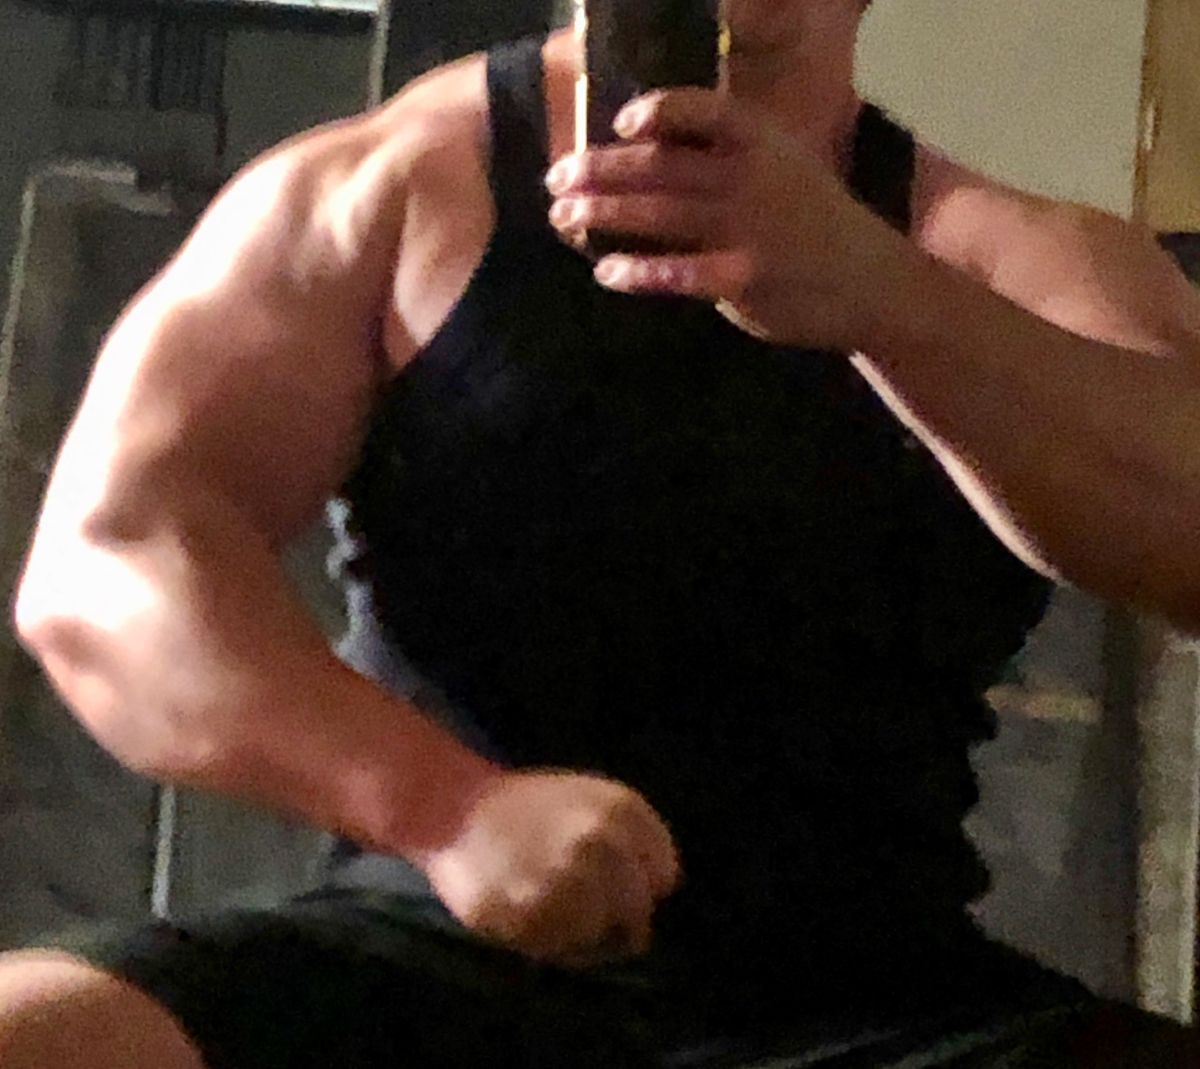 Onlyfans FlexCruise onlyfans leaked